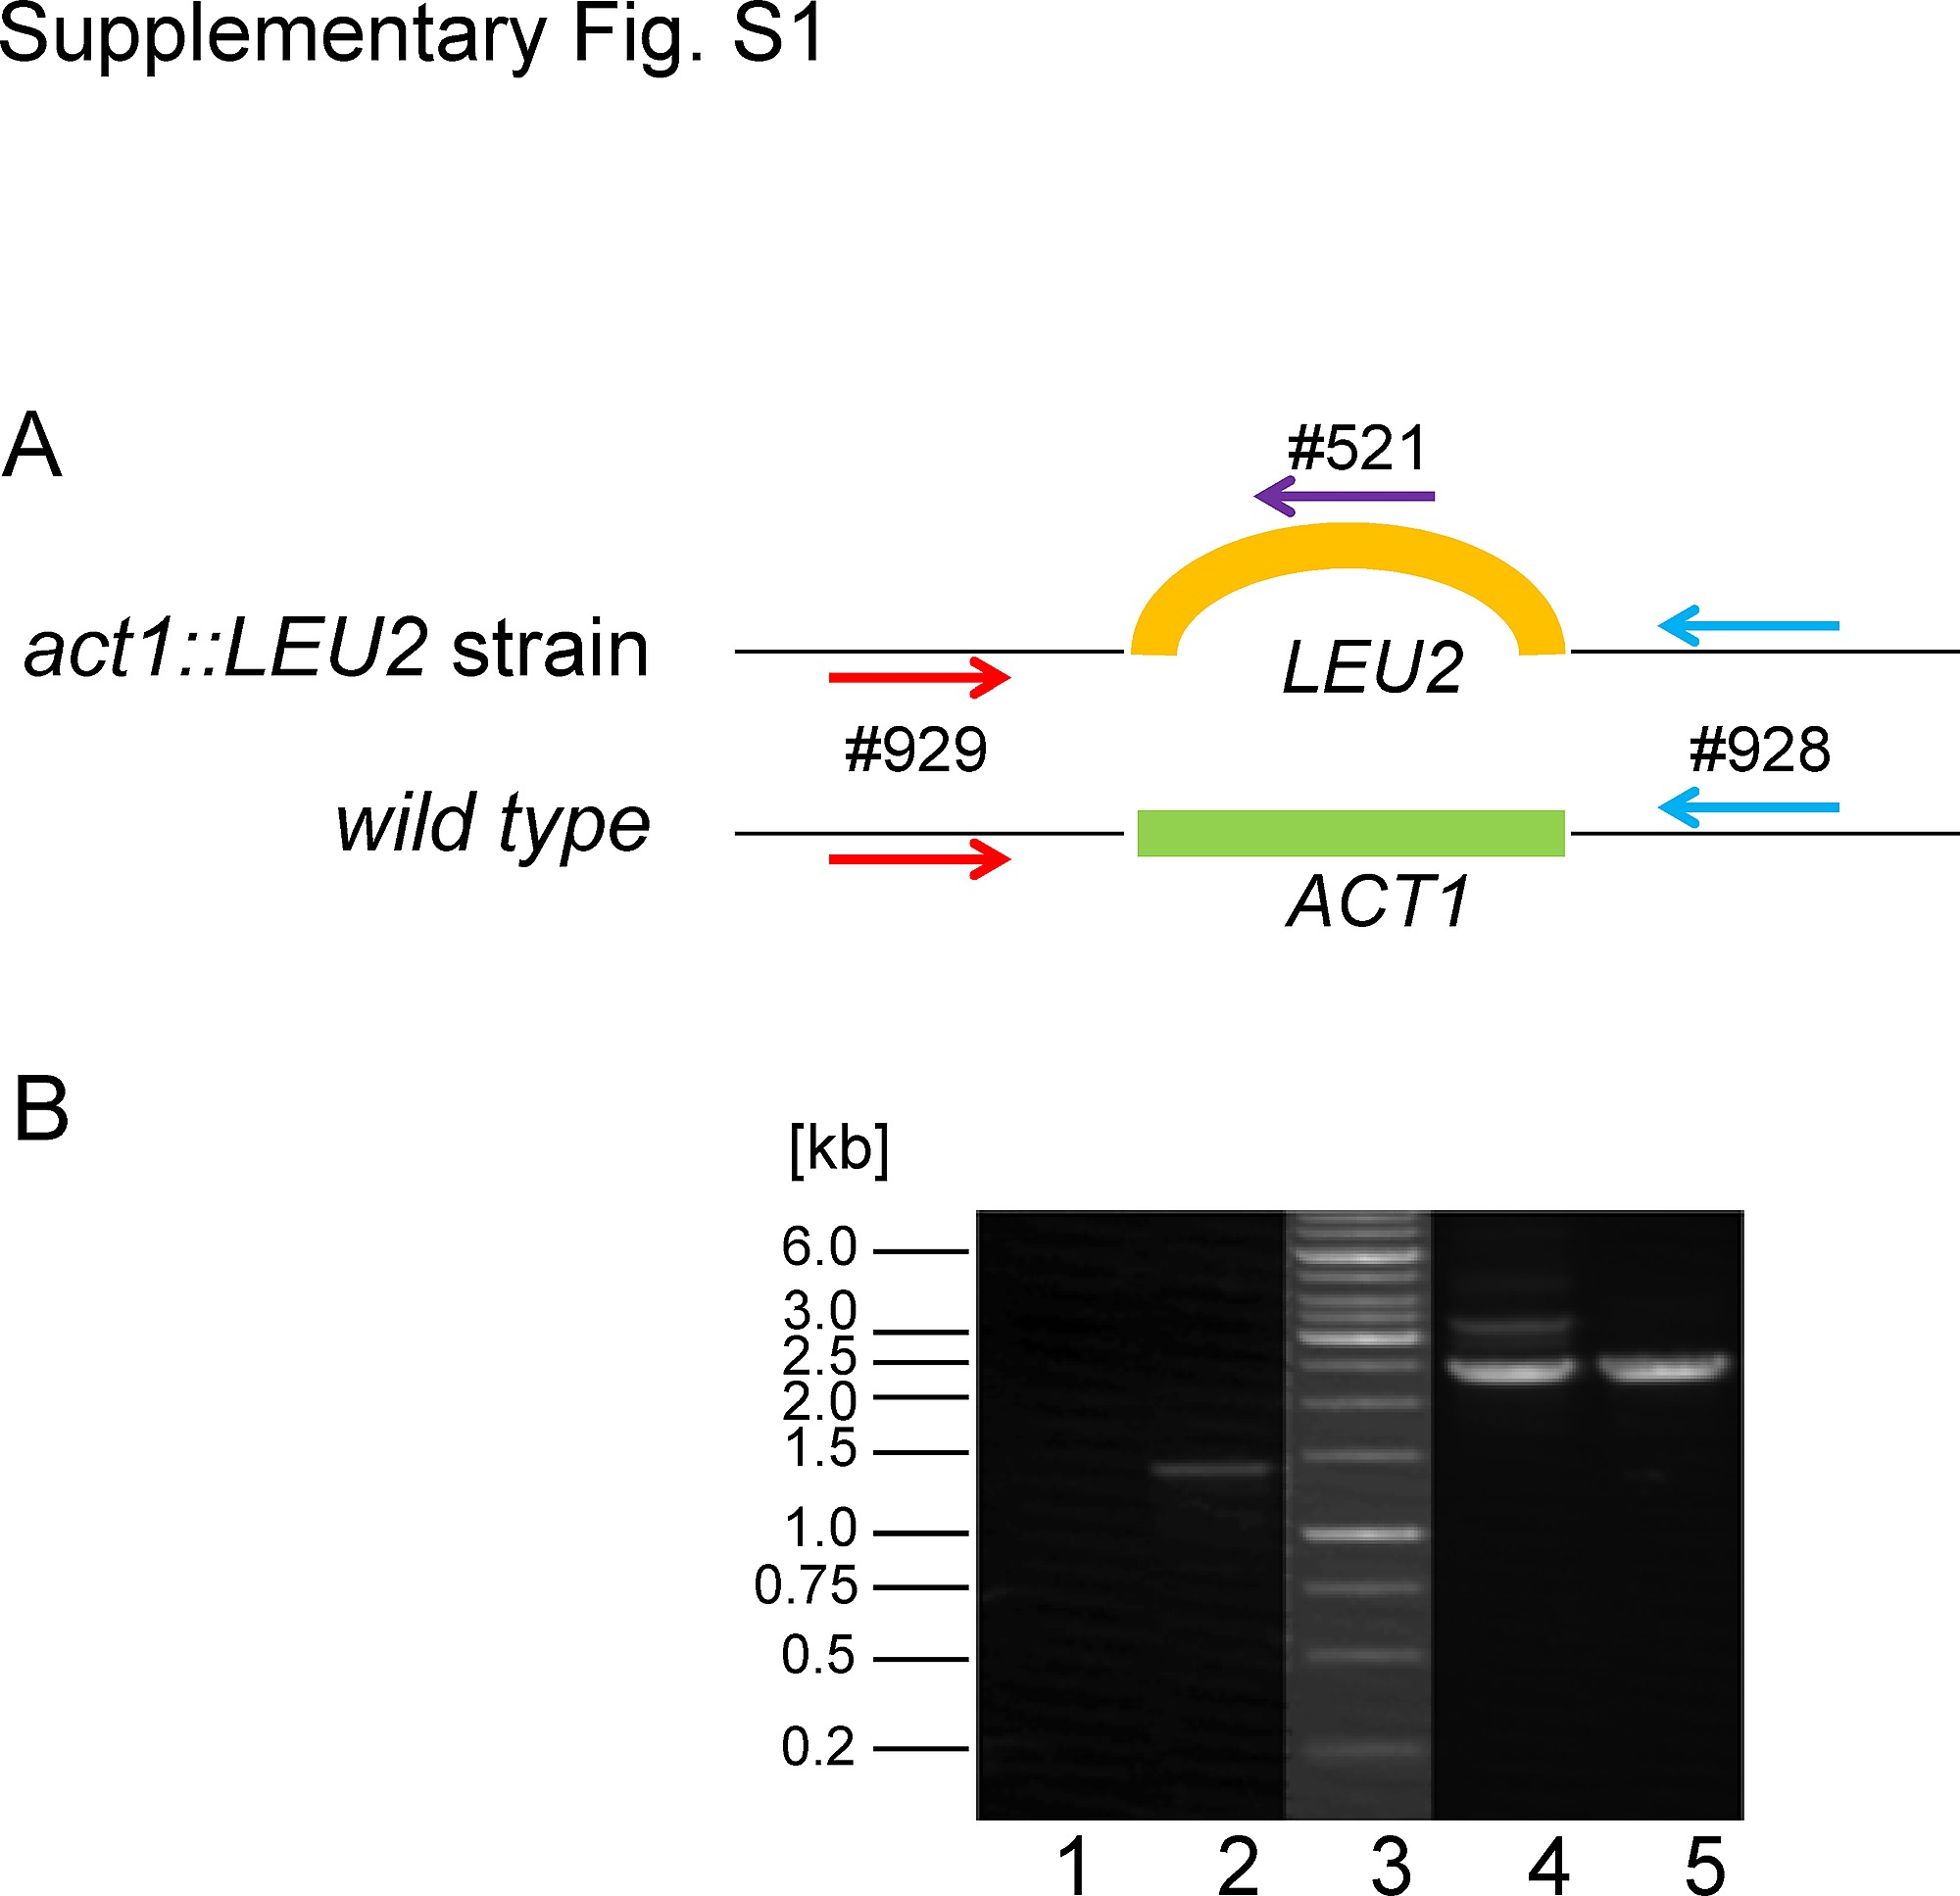 Roles of Asp179 and Glu270 in ADP Ribosylation of Actin by